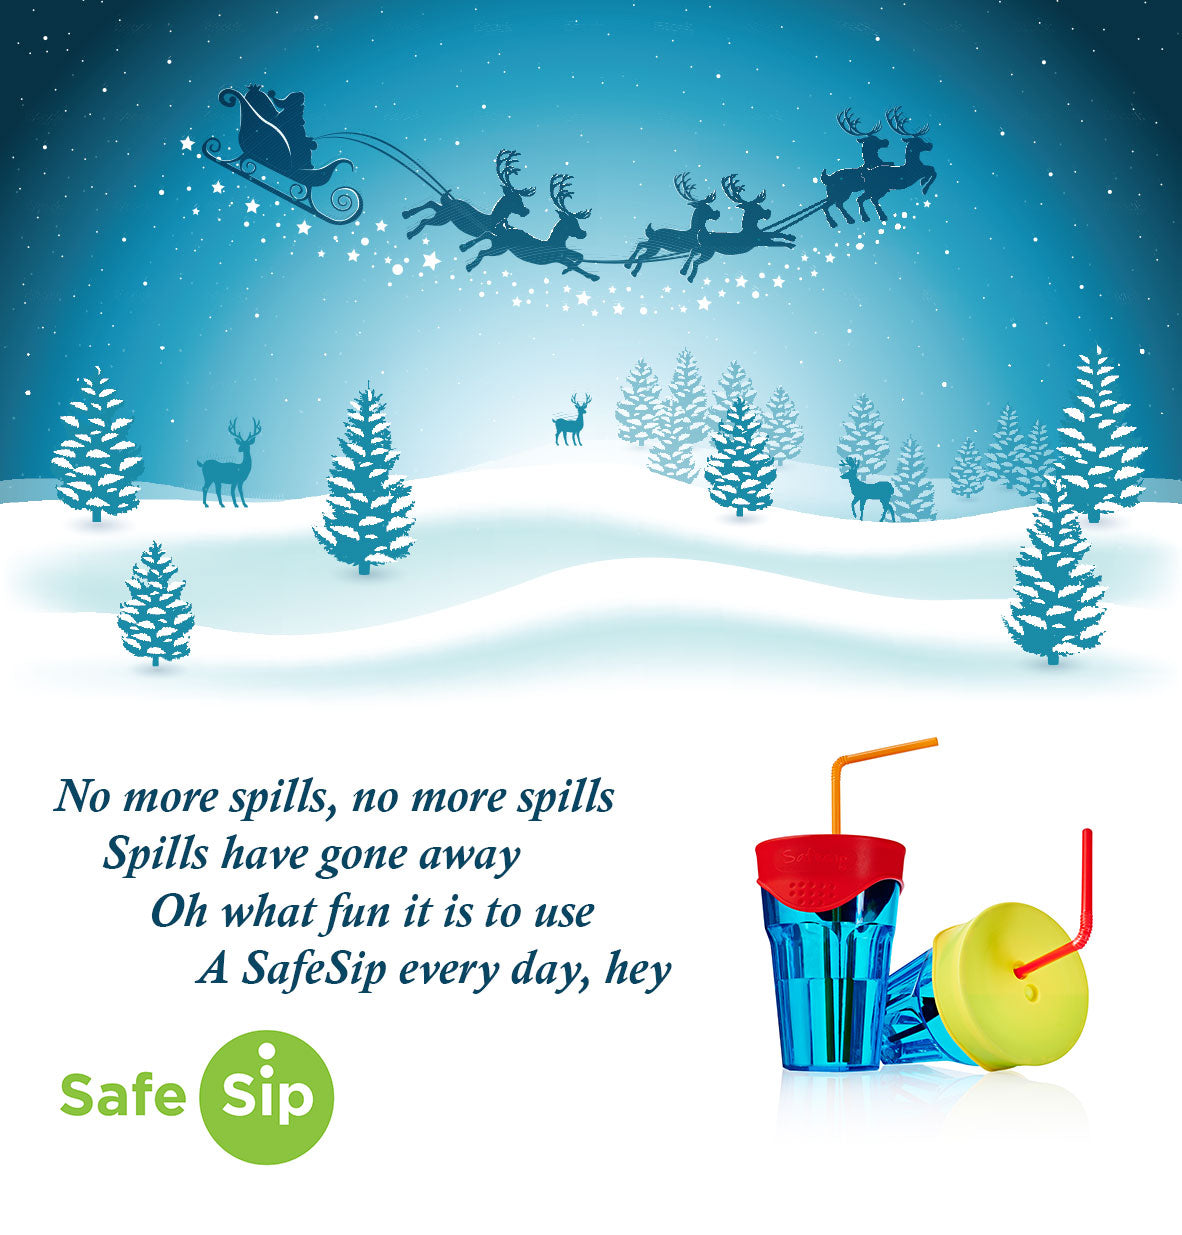 SafeSip Jingle Bells